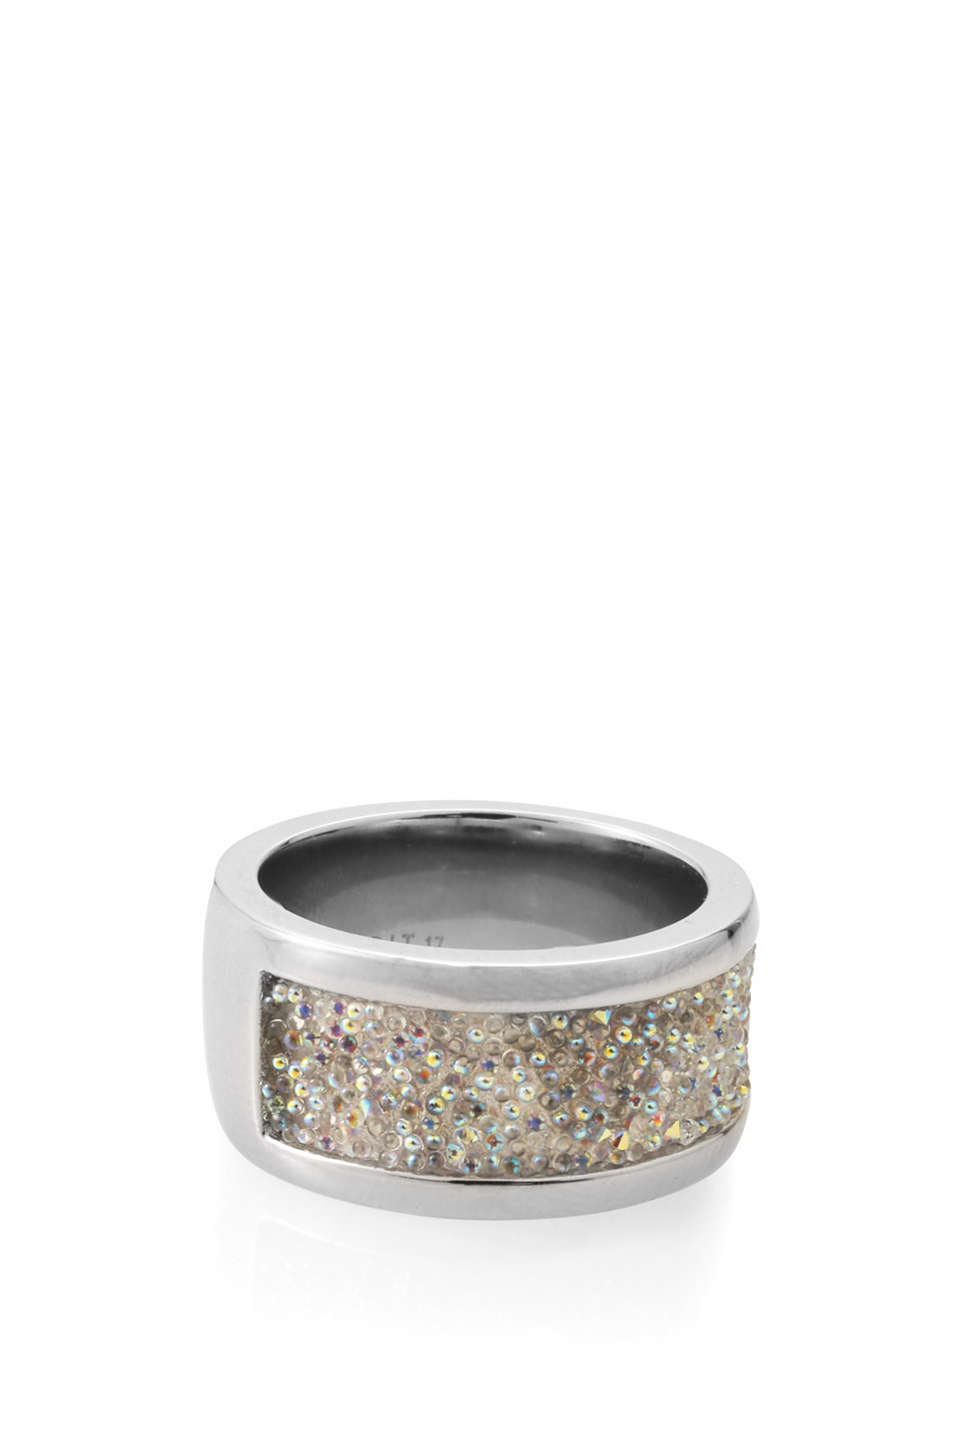 Esprit - wide ring with glitter section